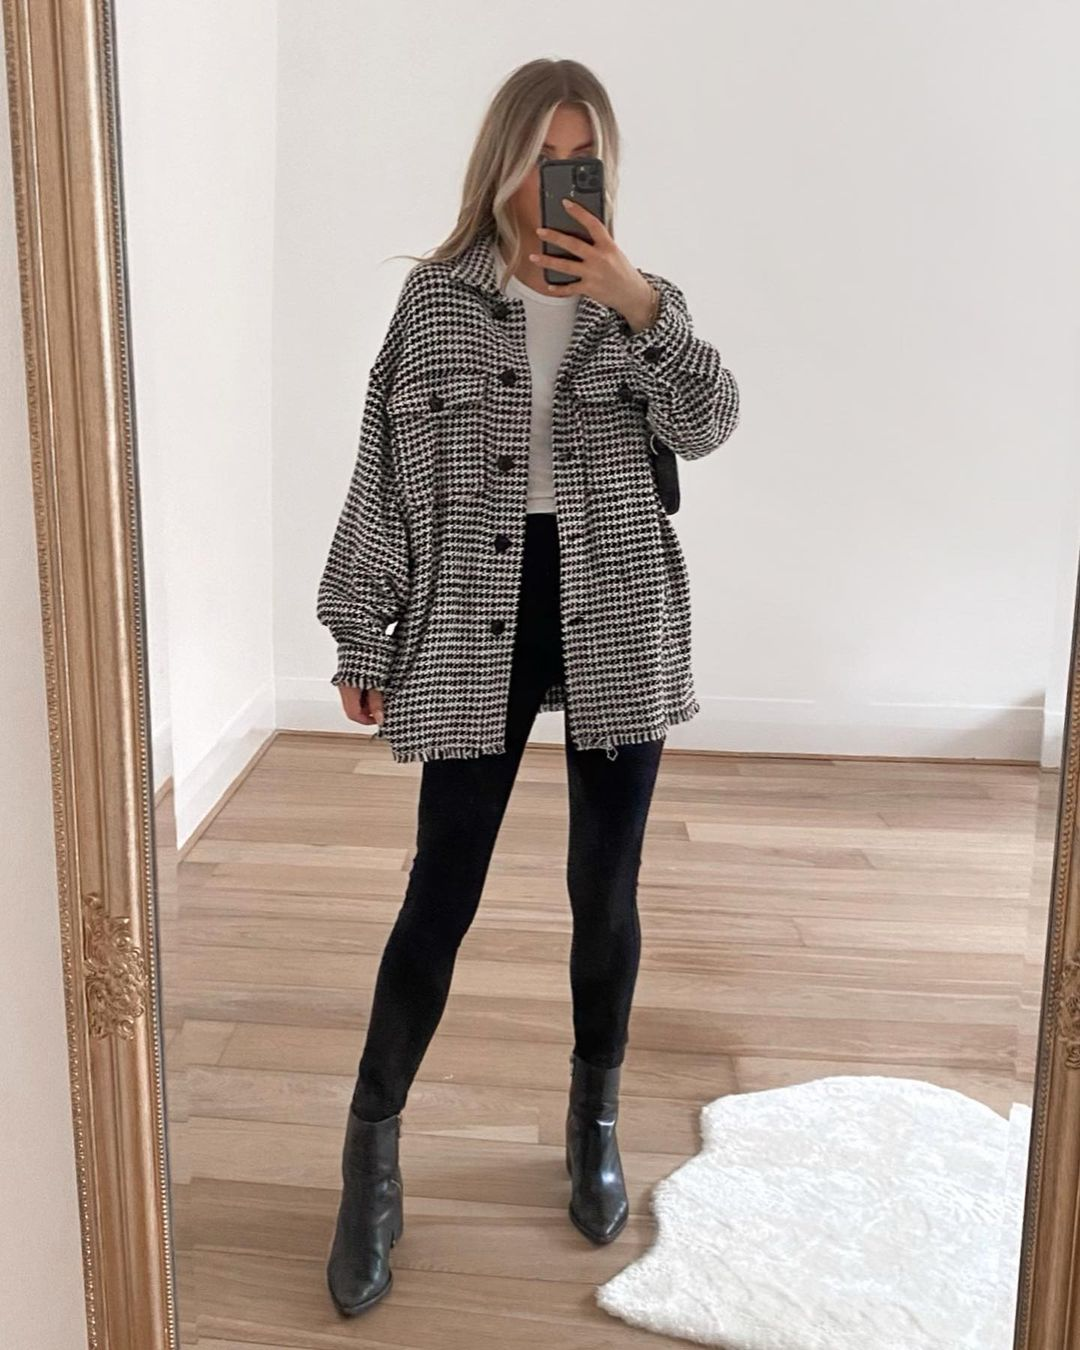 22 Houndstooth Coats and Jackets for Fall and Winter — Lydia Rose @fashioninflux instagram look with houndstooth shacket, leggings, and ankle boots